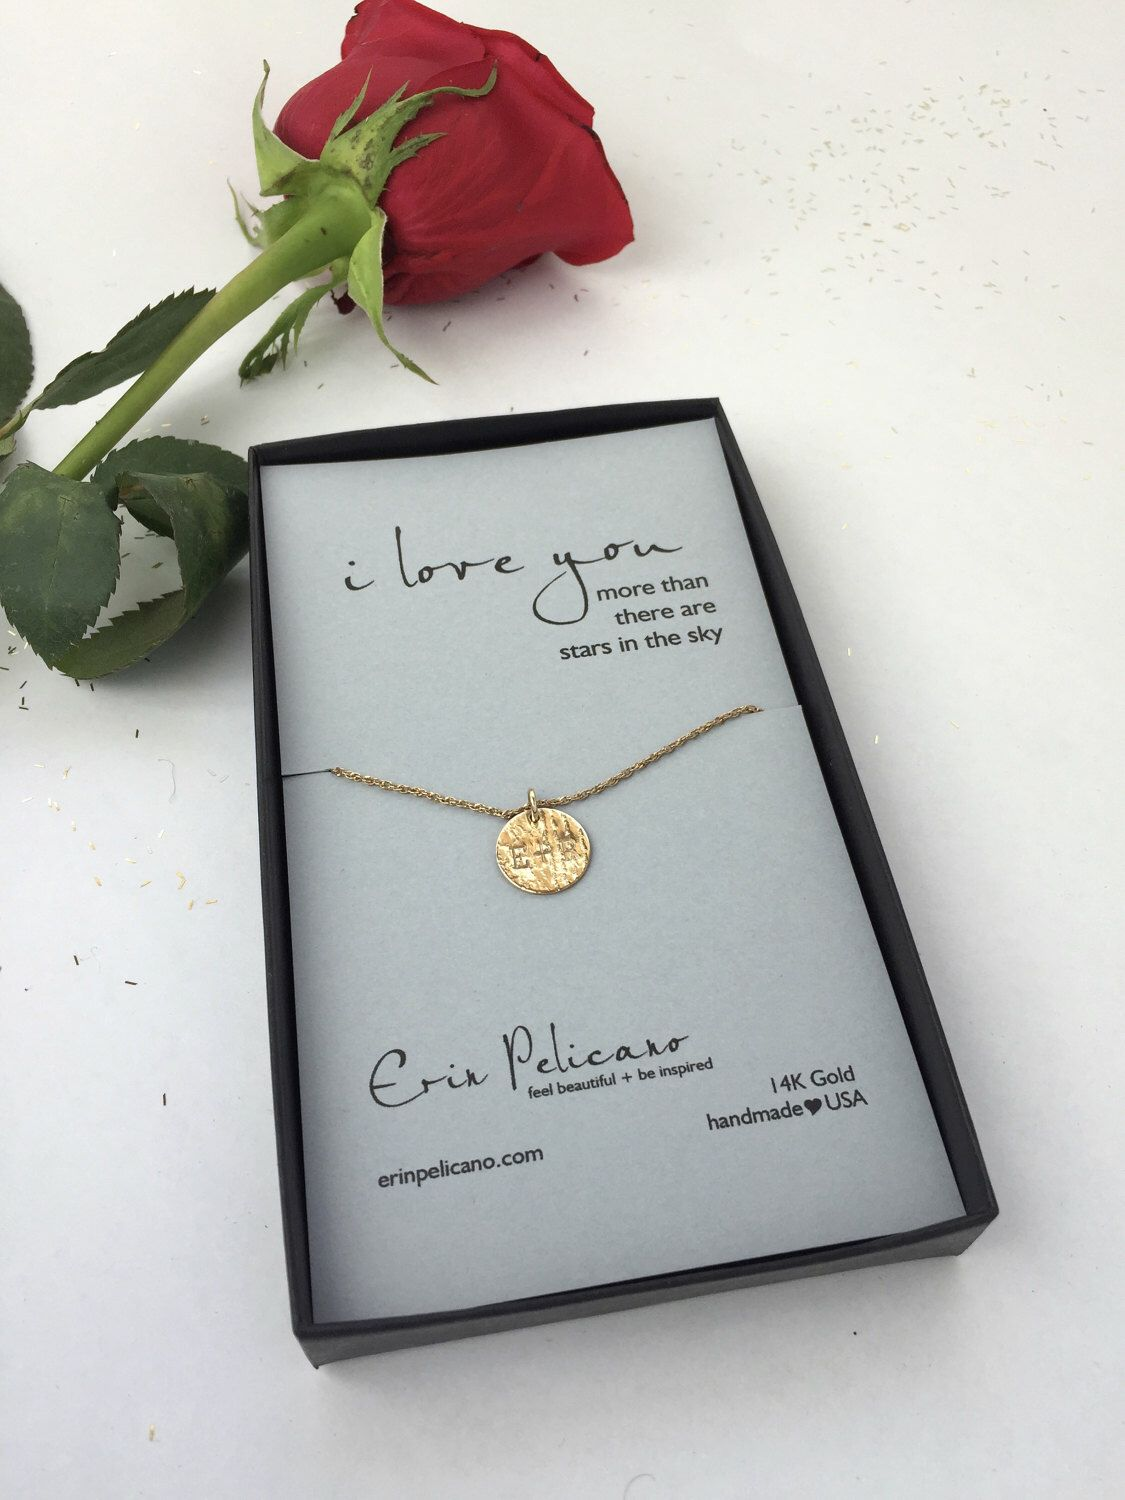 Valentines Gift Just For Her Ideas Wife Personalized Anniversary Jewelry Luxury Love Necklace Romantic Girlfriend